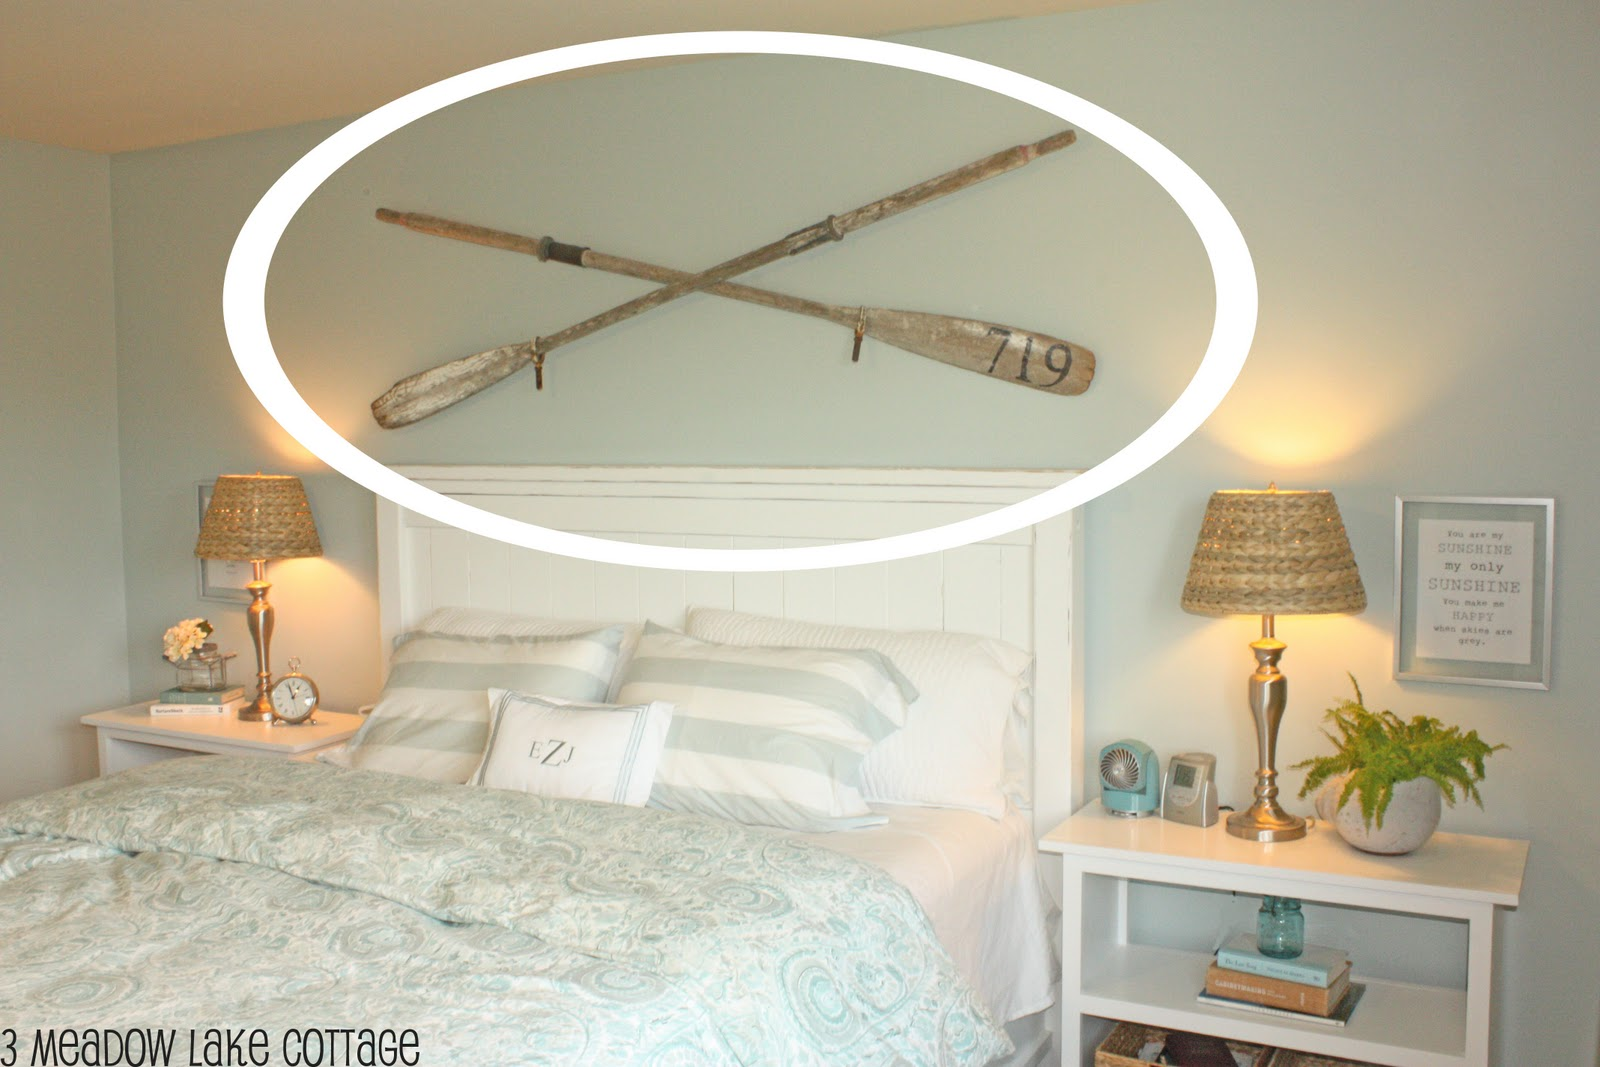 How Does One Display Two Oars On Wall